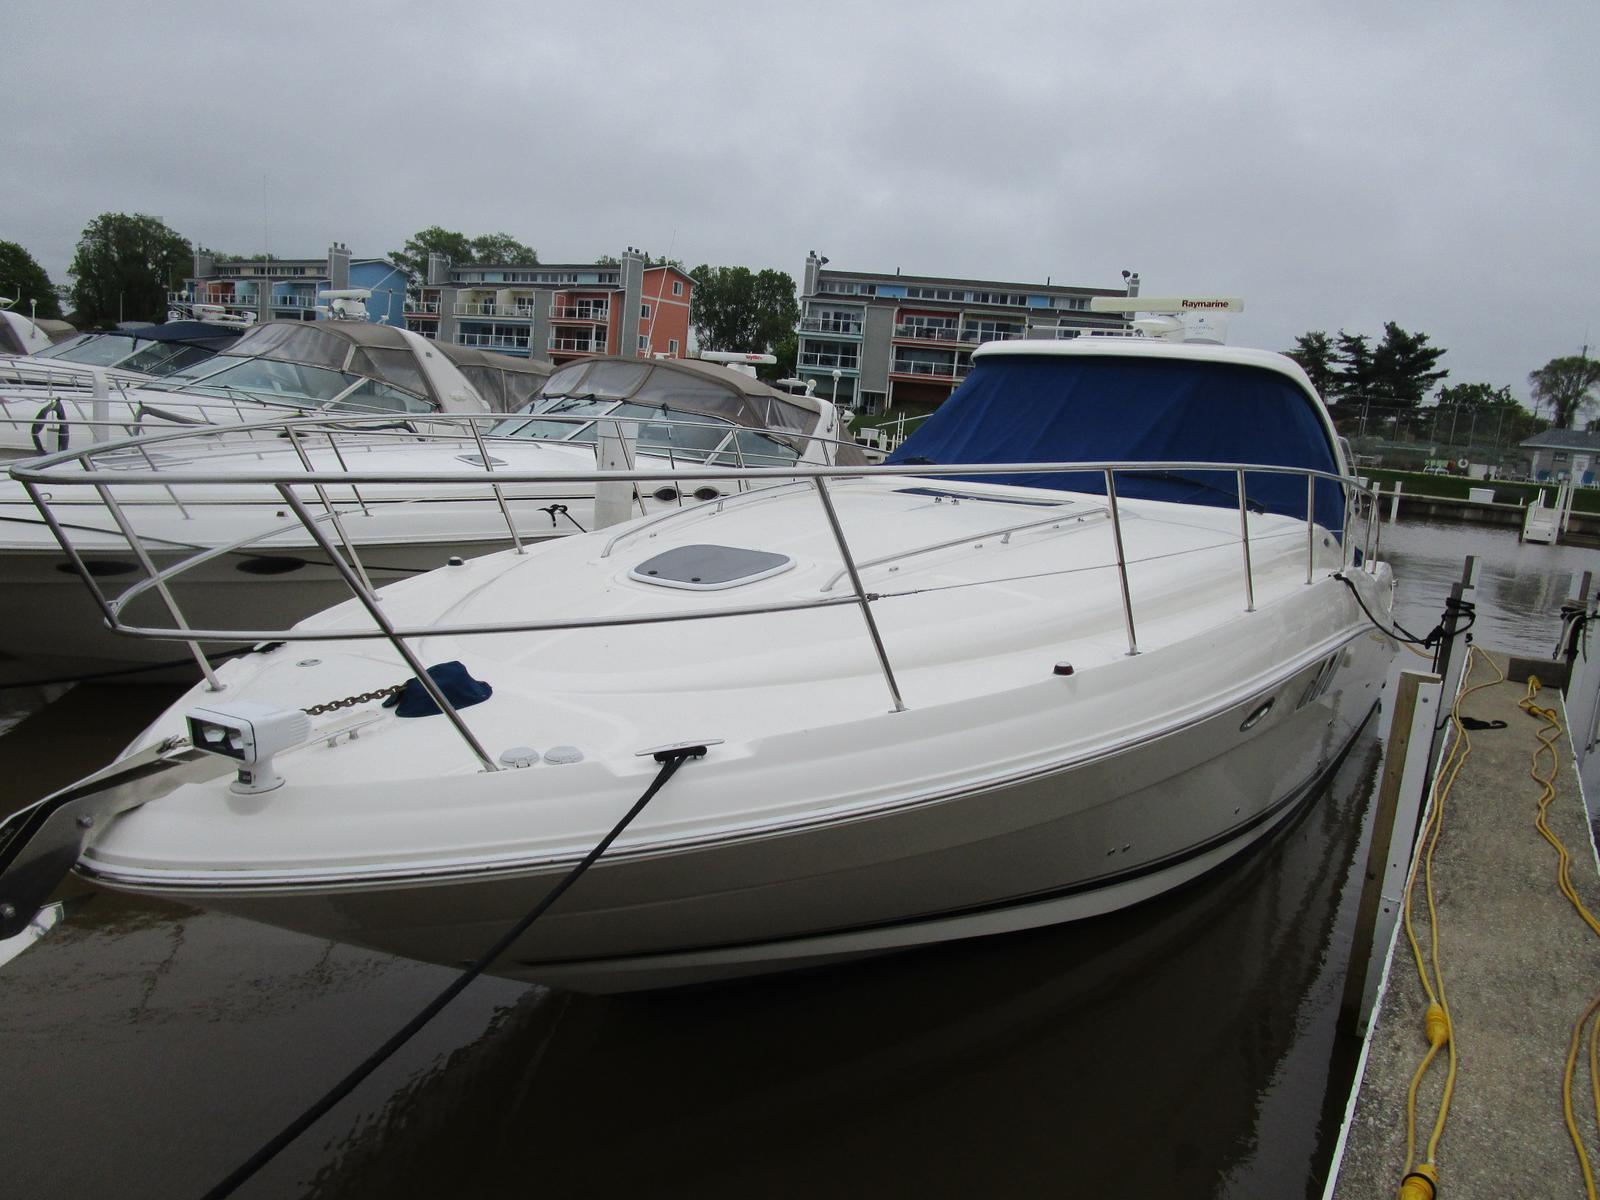 2010 Sea Ray boat for sale, model of the boat is 40 Sundancer & Image # 1 of 14